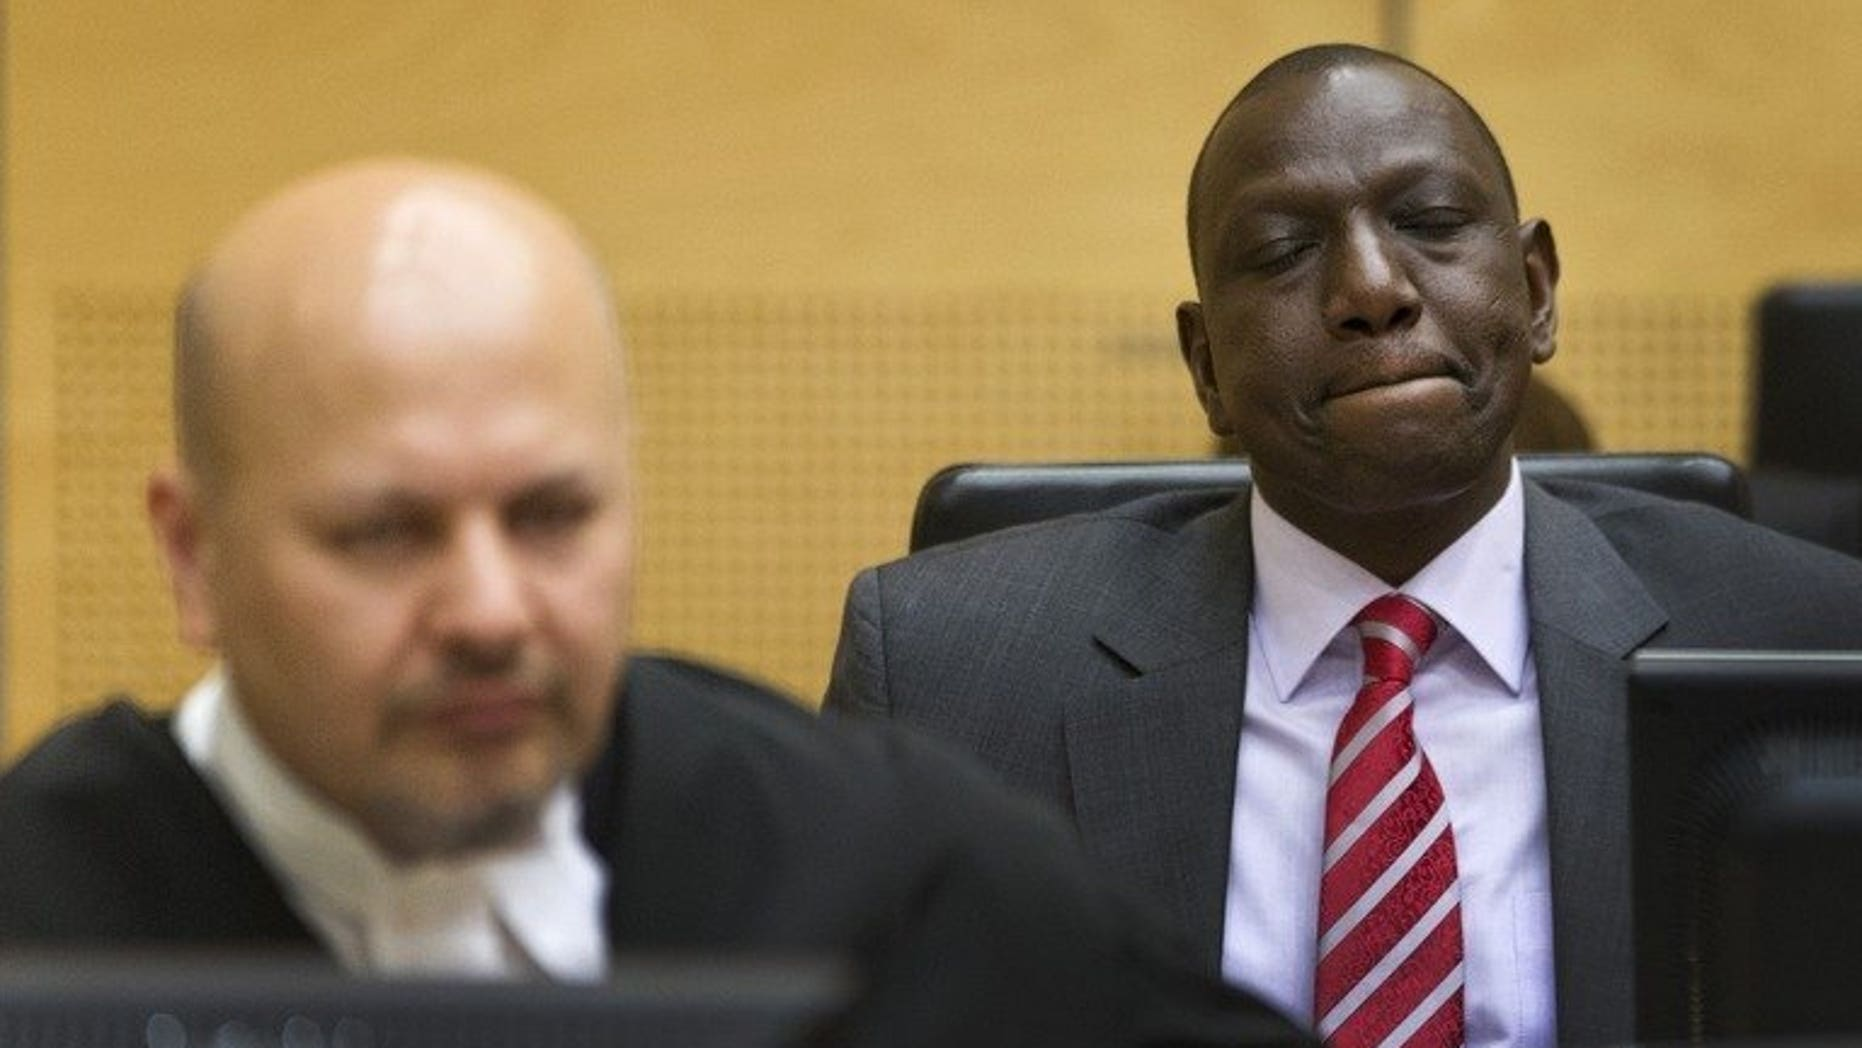 Kenya's Deputy President William Ruto (right) reacts as he sits in the courtroom before their trial at the International Criminal Court (ICC) in The Hague on September 10, 2013. African leaders are to hold a special summit next month amid growing opposition to the crimes against humanity trials of Kenya's leadership at the International Criminal Court.